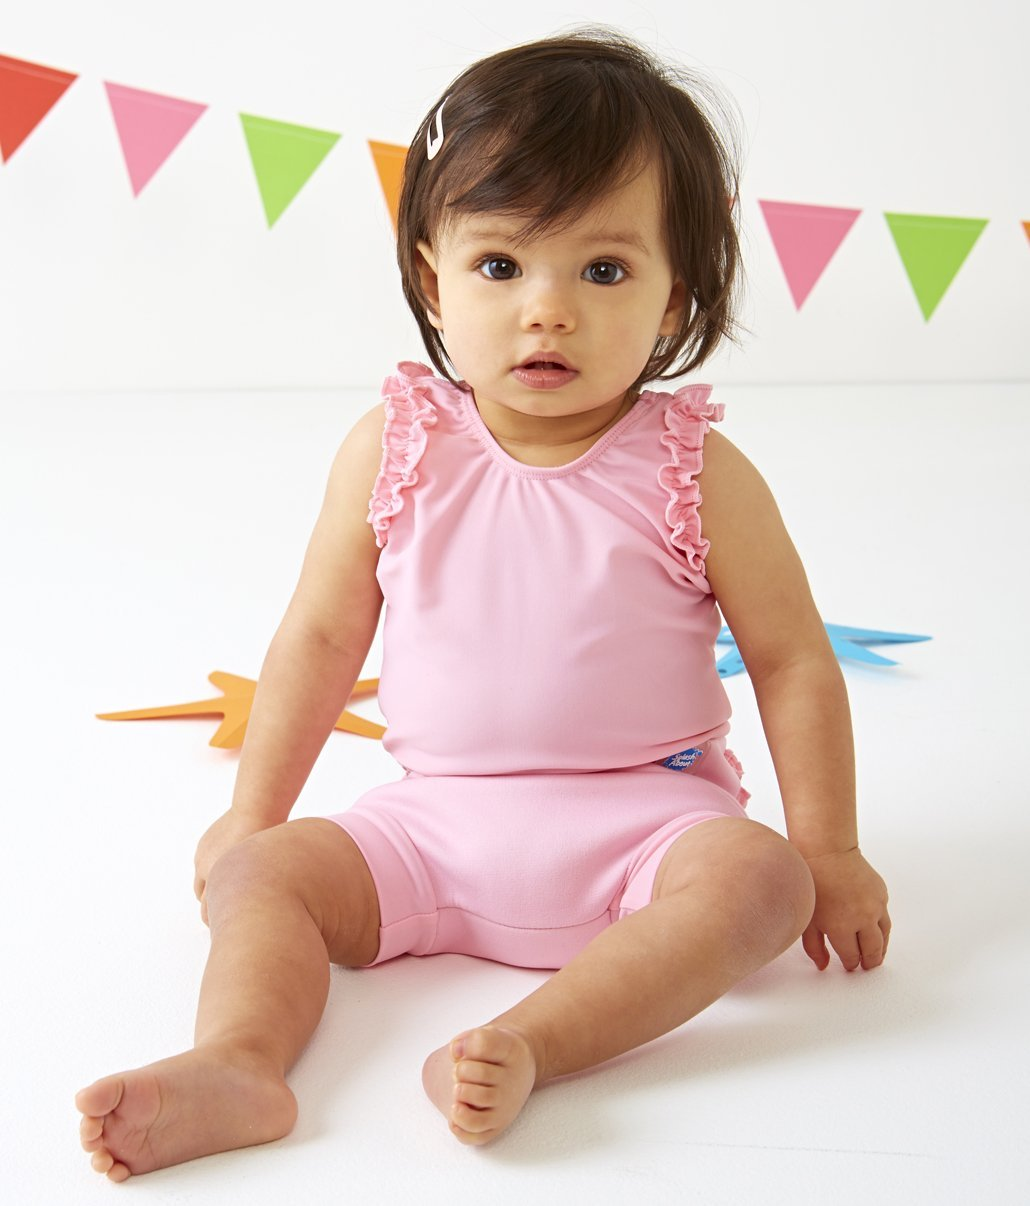 Baby, Children and Women's UV Swimwear - UPF50+ Platypus Australia is a leading UV swimwear brand, offering a selection of high quality sun protective swimwear for .